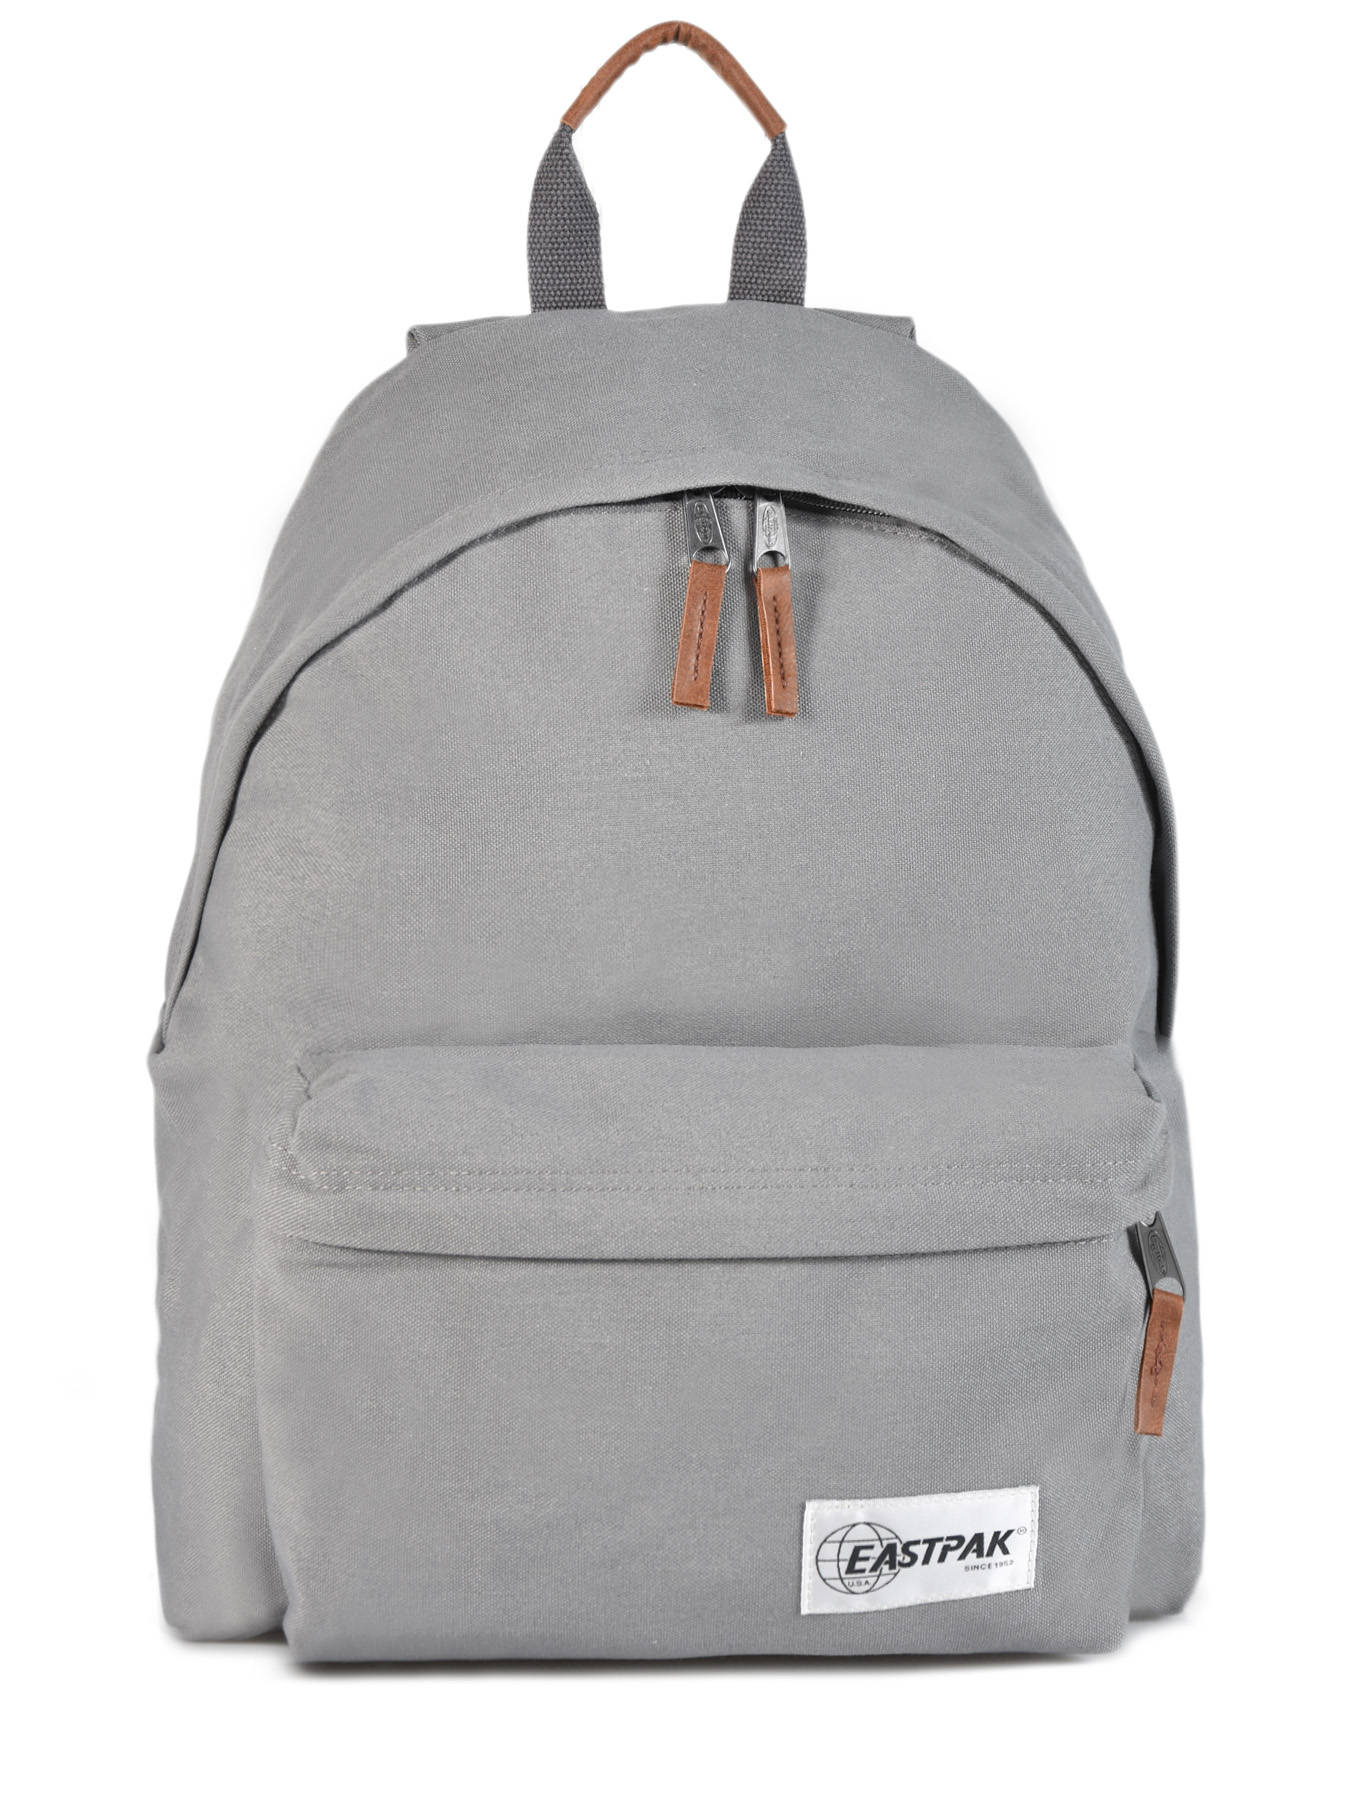 Sac à dos Eastpak London Opgrade Gris